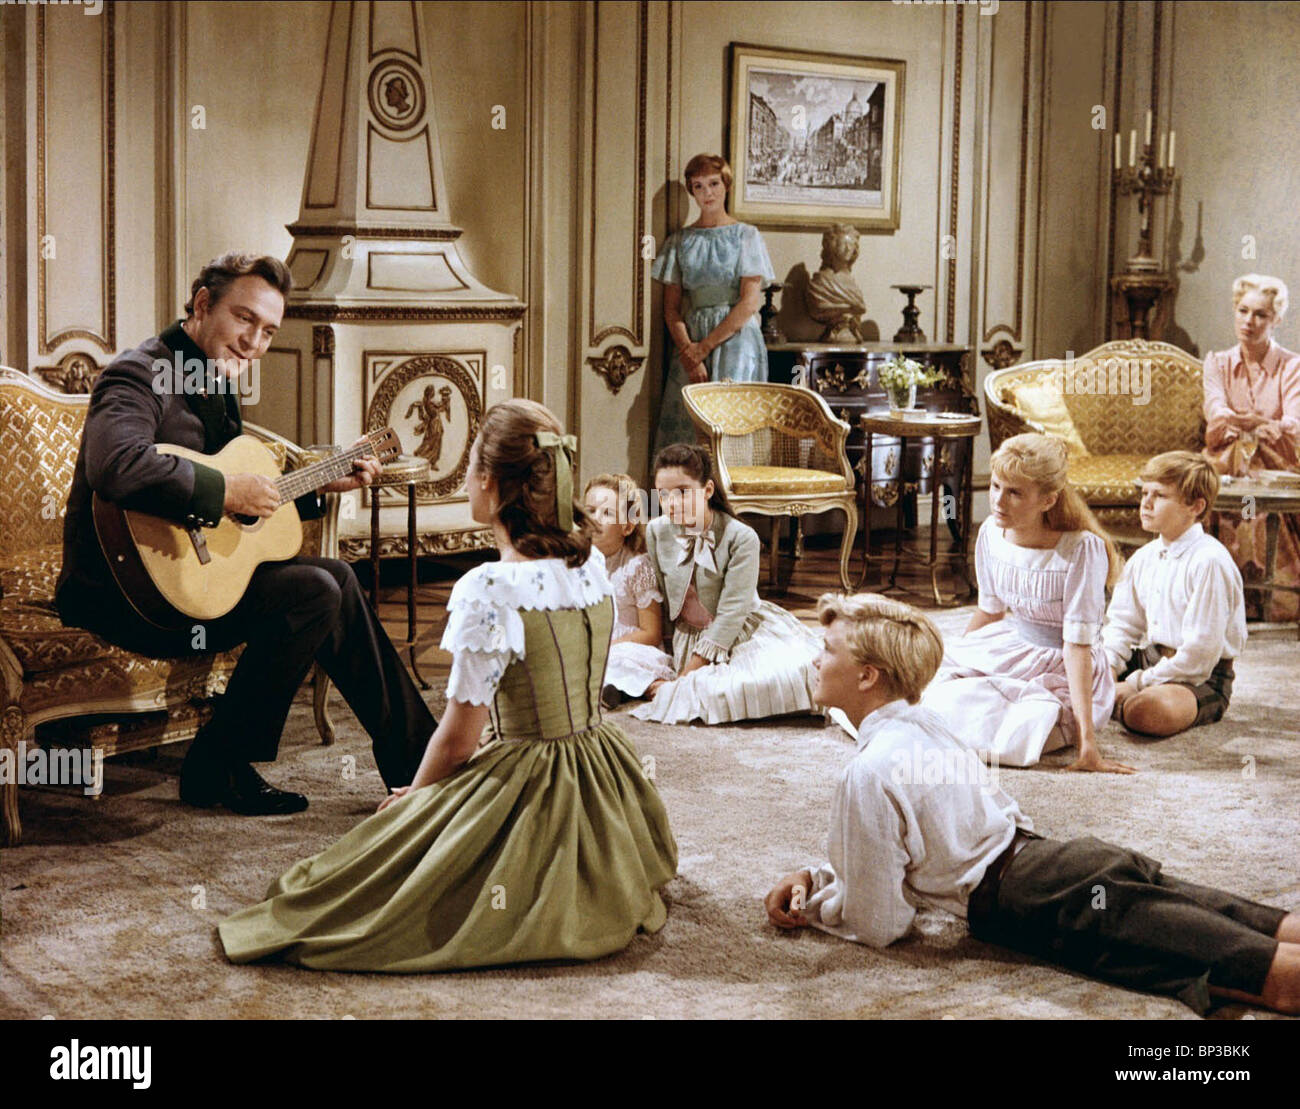 JULIE ANDREWS, ELEANOR PARKER,KYM KARATH, Debbie TURNER, Heather Menzies, ANGELA CARTWRIGHT, DUANE CHASE, CHRISTOPHER Immagini Stock